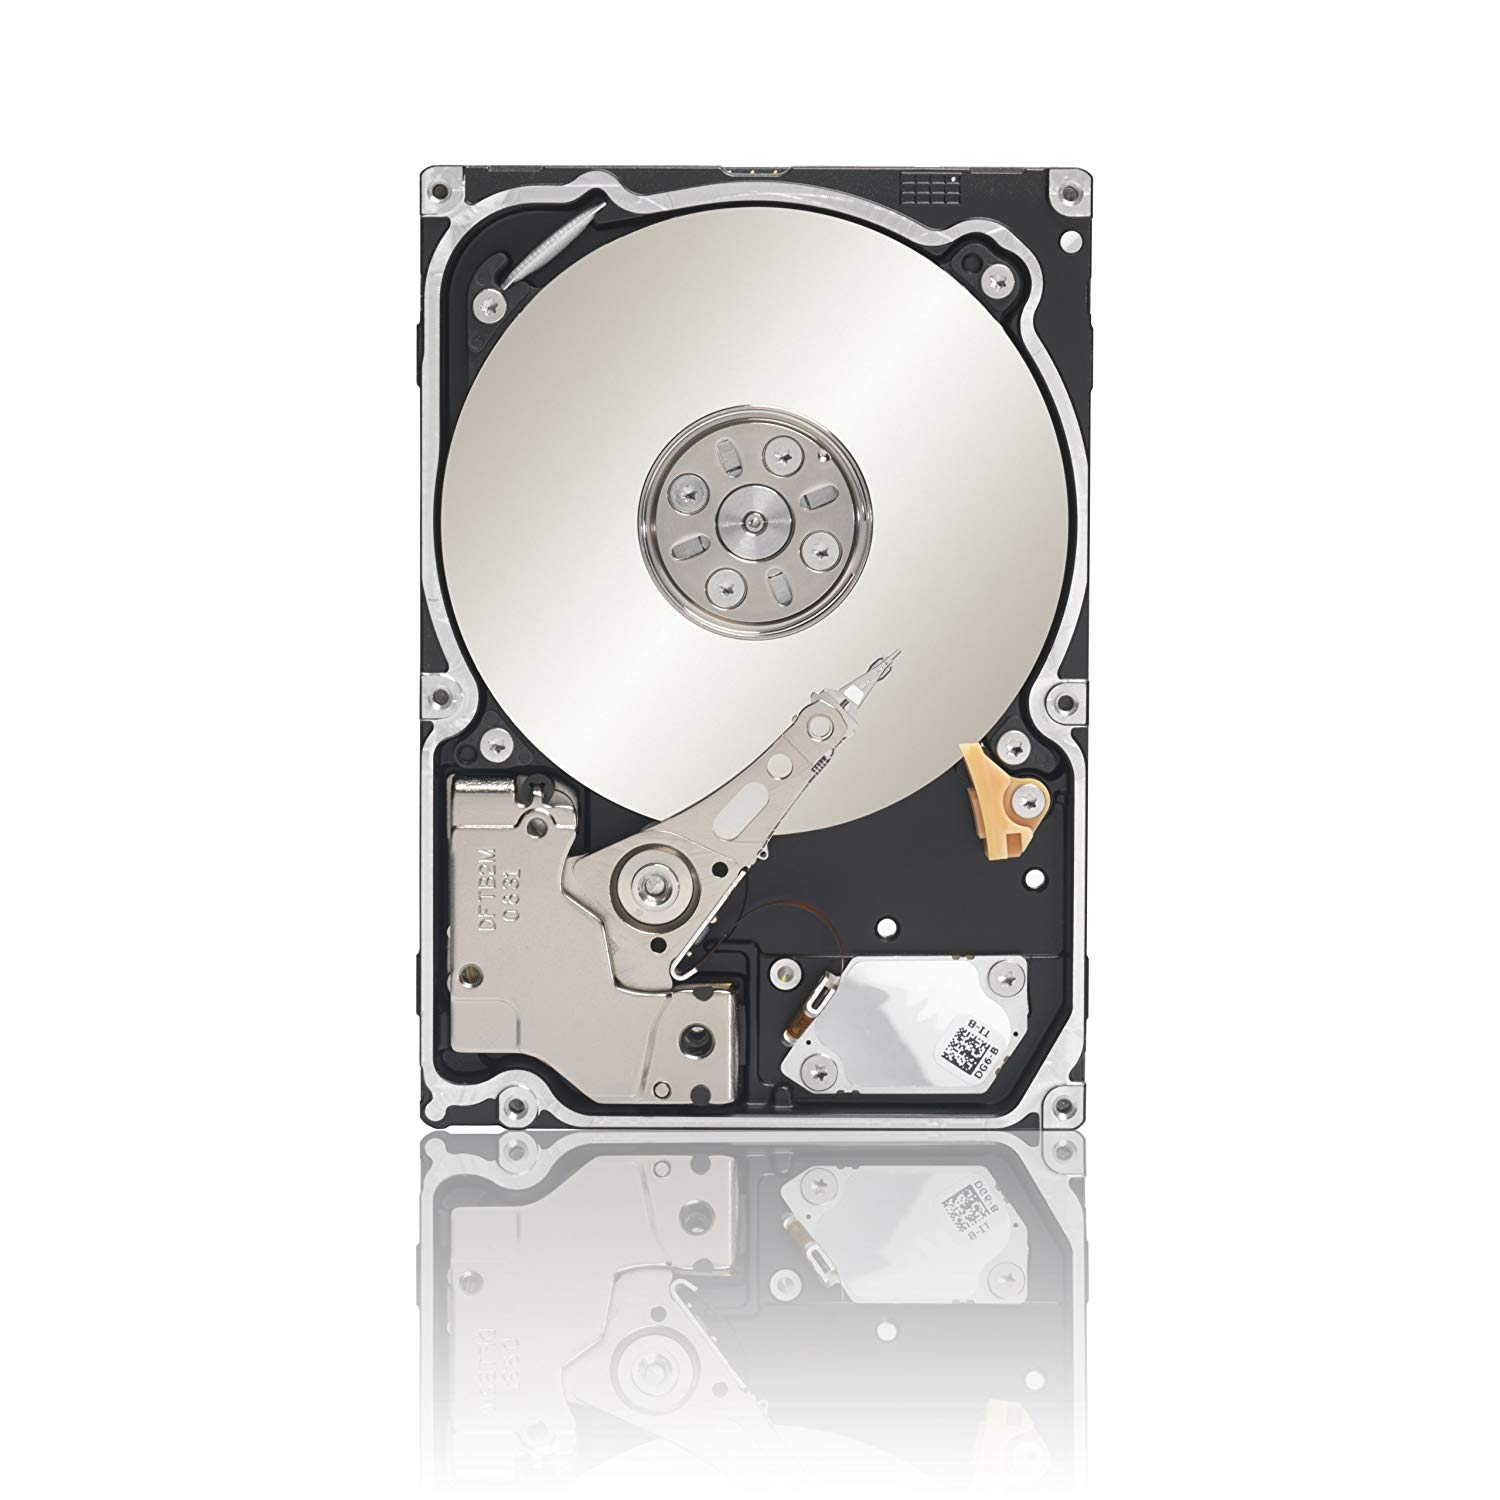 "Seagate ST6000NM0024 6TB 7200 RPM SATA 6Gb/s 128MB Cache 512e 3.5"" Enterprise Capacity Internal Hard Drive"